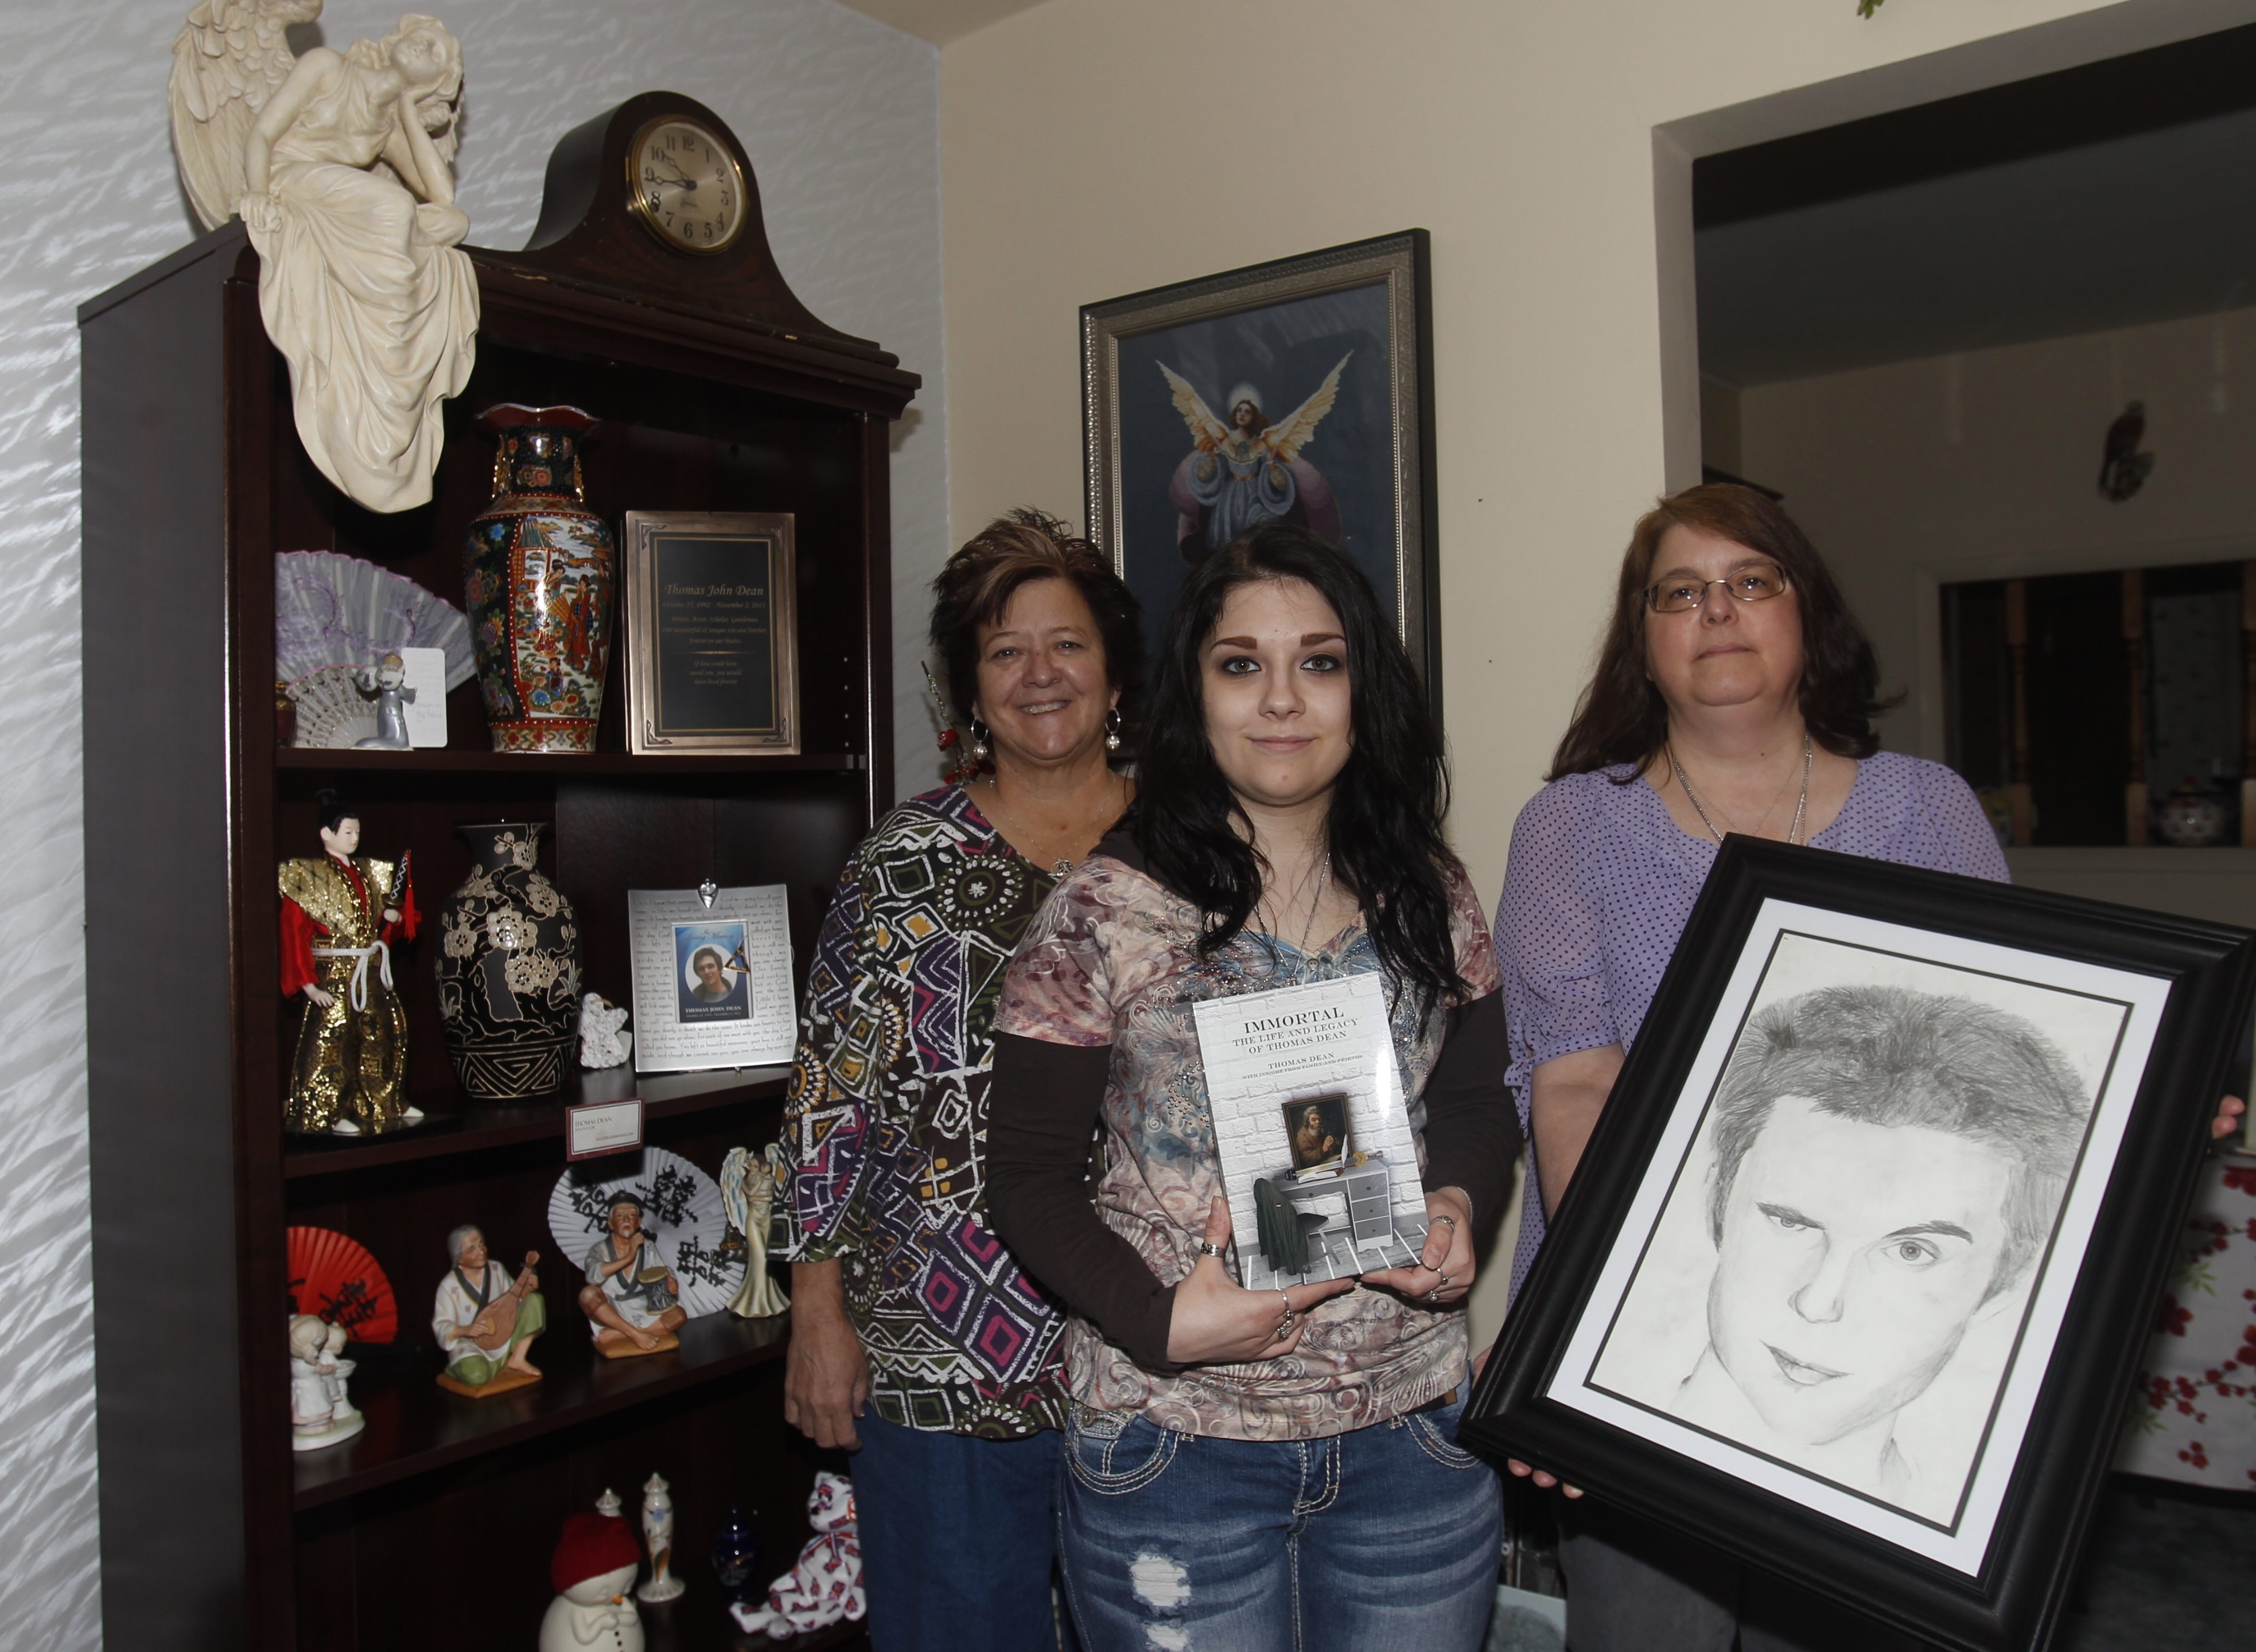 The family of Fredonia State College senior Thomas Dean, who died at school last fall of what they later learned was a virus that attacked his heart, from left,  his godmother Jean Murphy; his mother, Susan Dean;  and her daughter, Katherine.